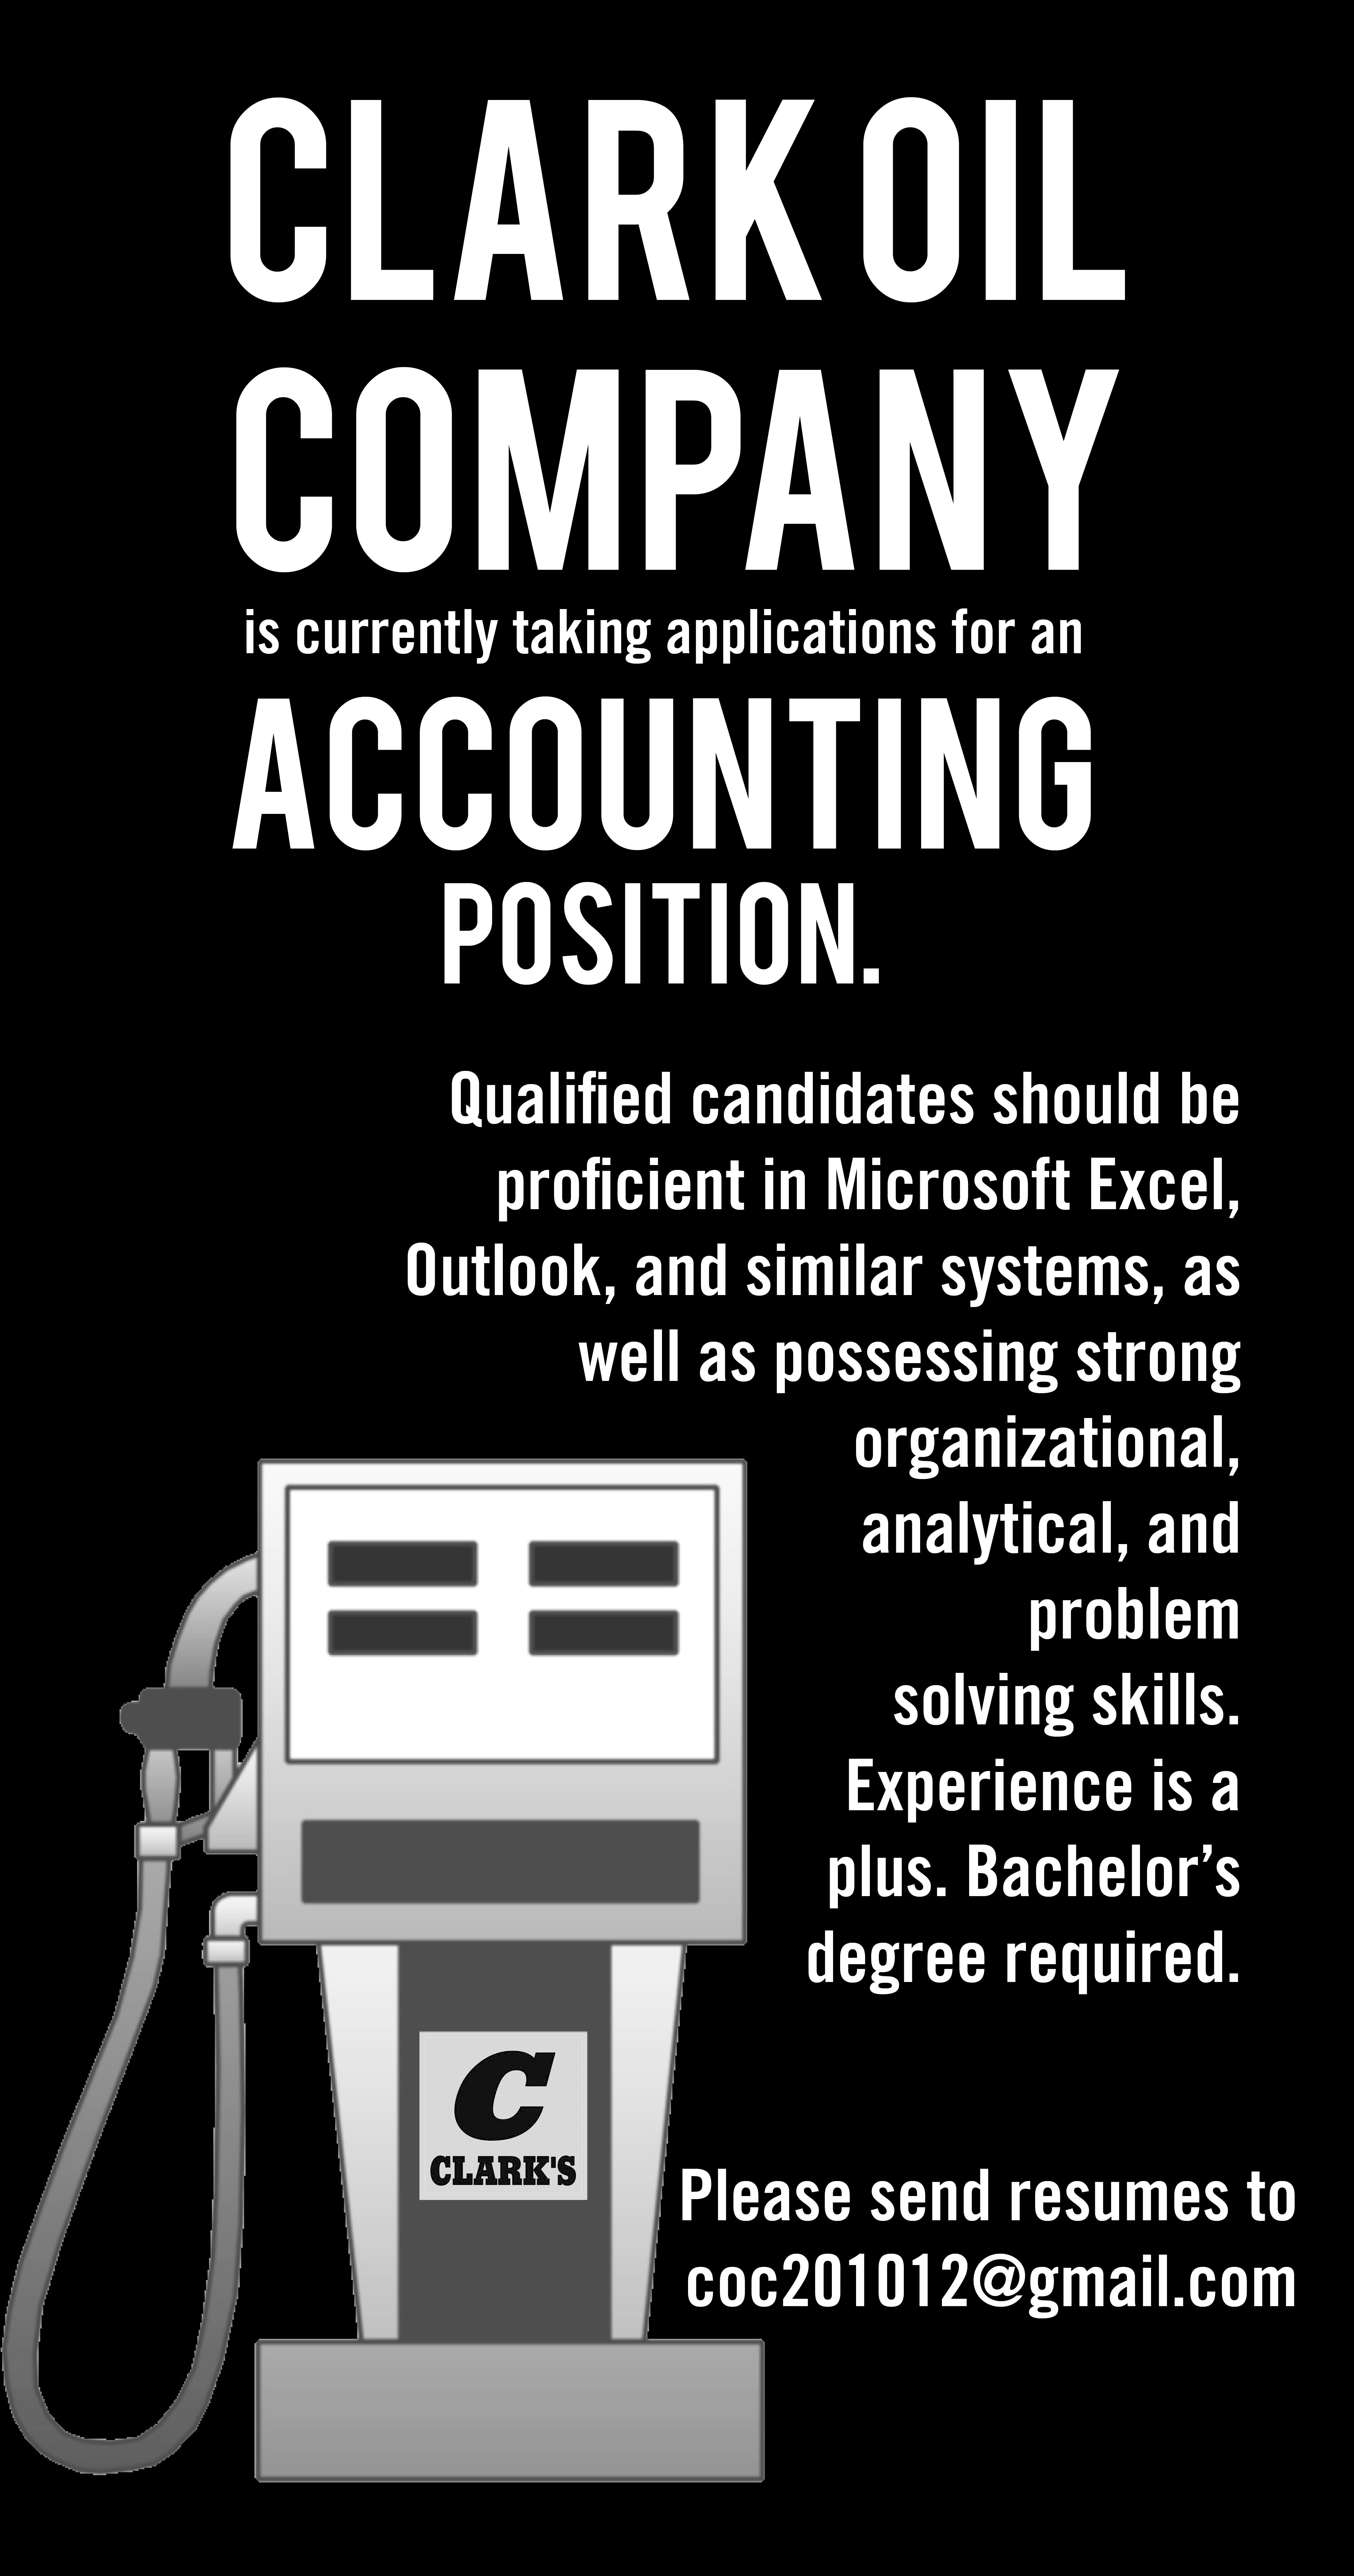 Clark Oil Company is currently taking applications for an Accounting Position